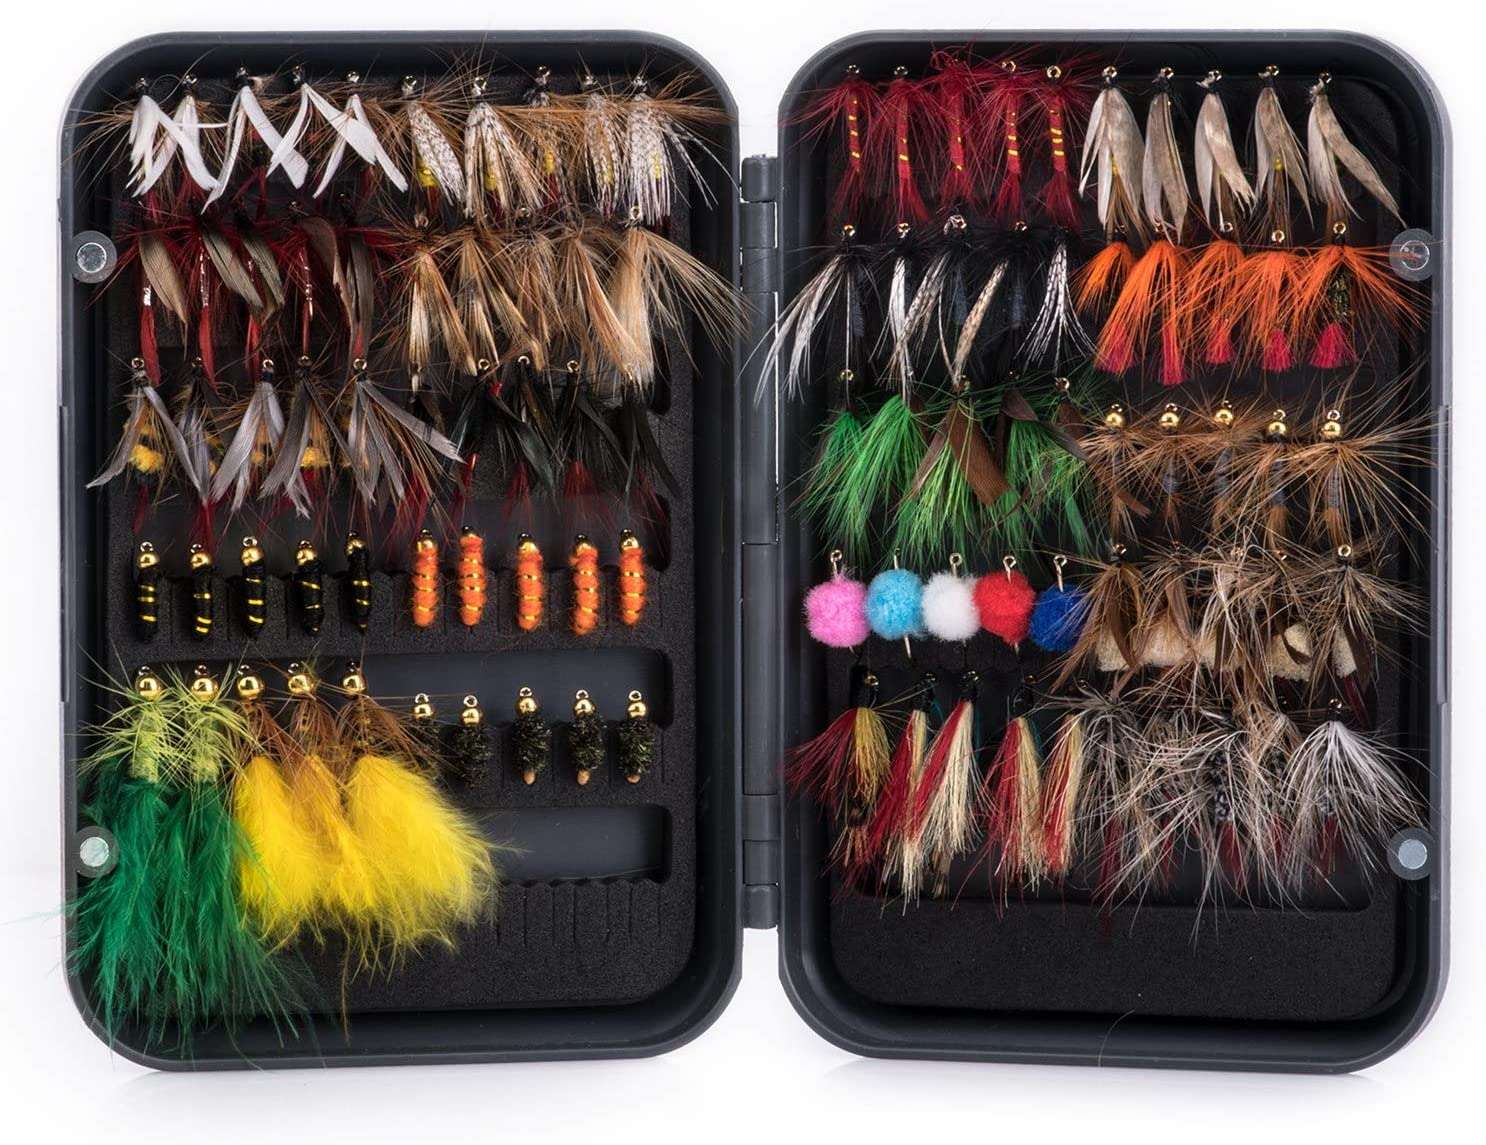 Goture Max 64% OFF Fly Fishing Flies Kit Lures wi 76pcs Reservation - 100pcs